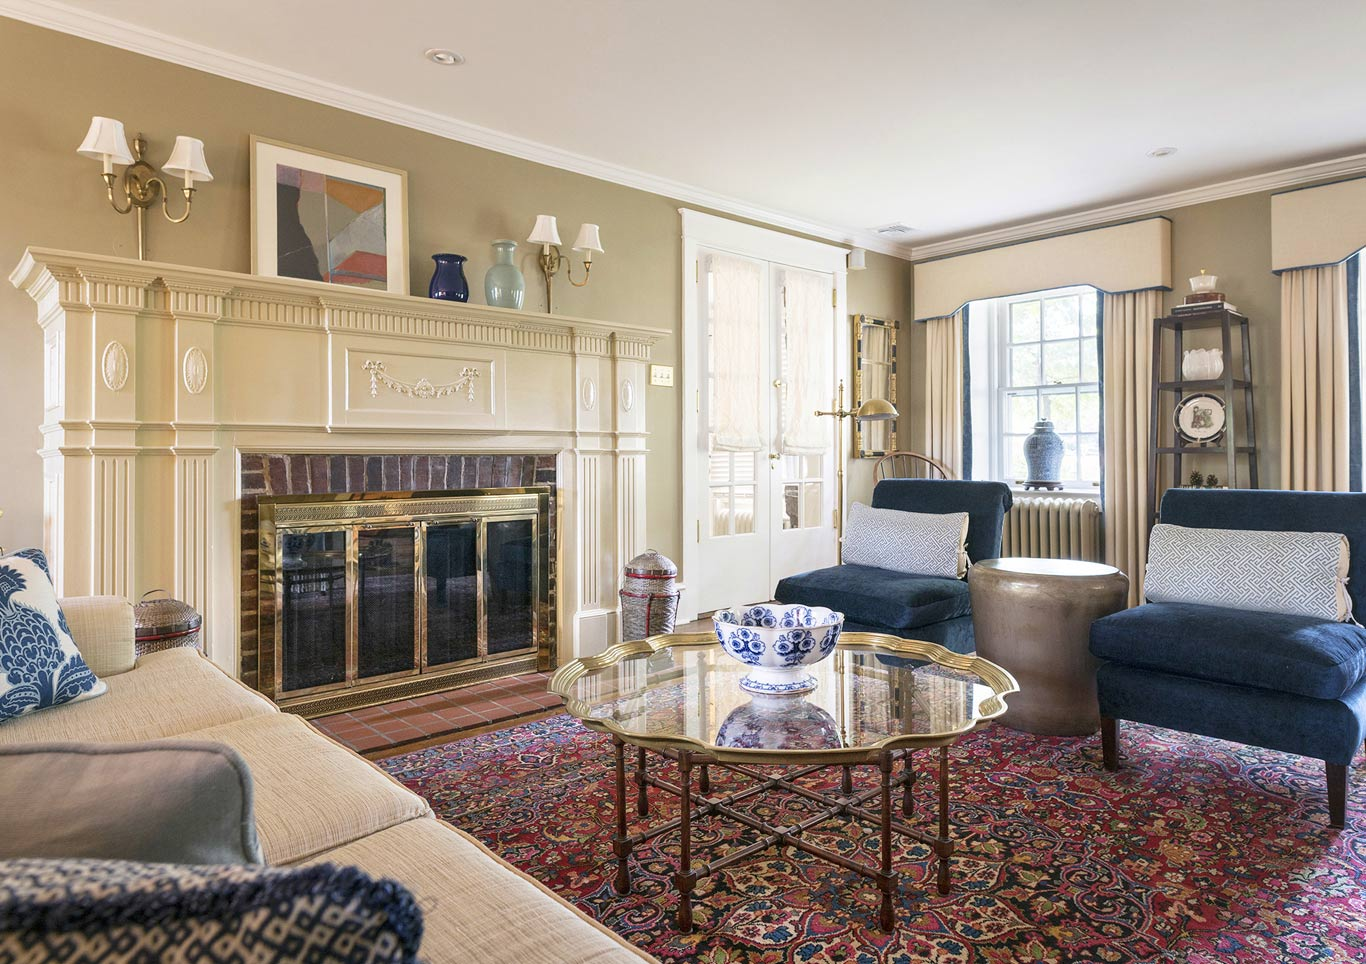 Portfolio Interior Design Philadelphia Main Line